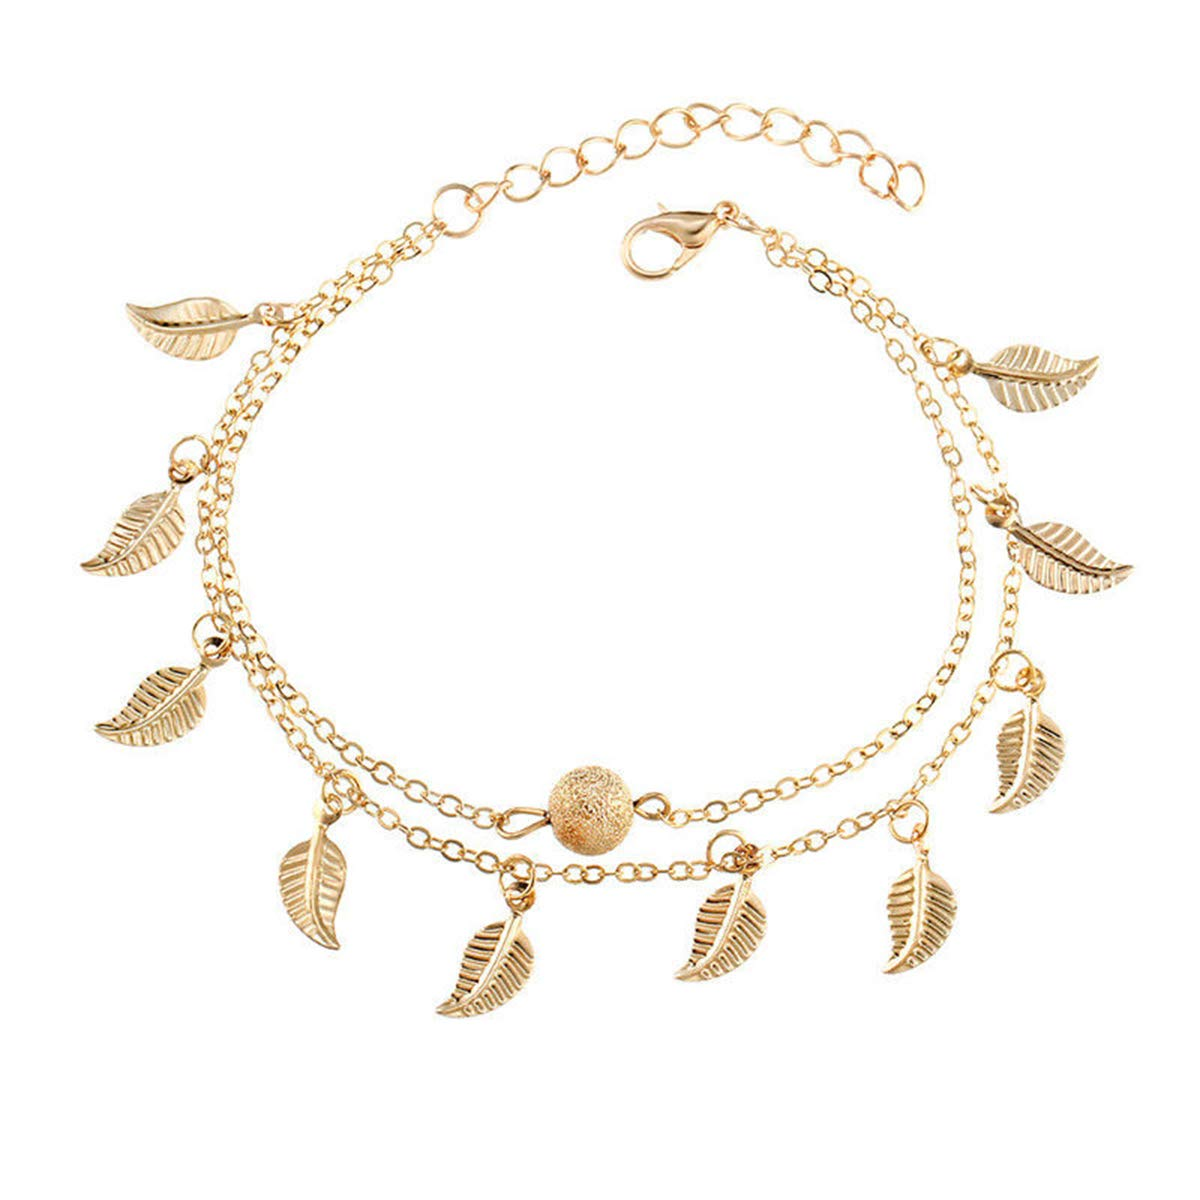 Pretty.auto Women Ladies Girls Vintage Fringed Leaf Lucky Anklets Adjustable Silver Gold Foot Chain (Gold)